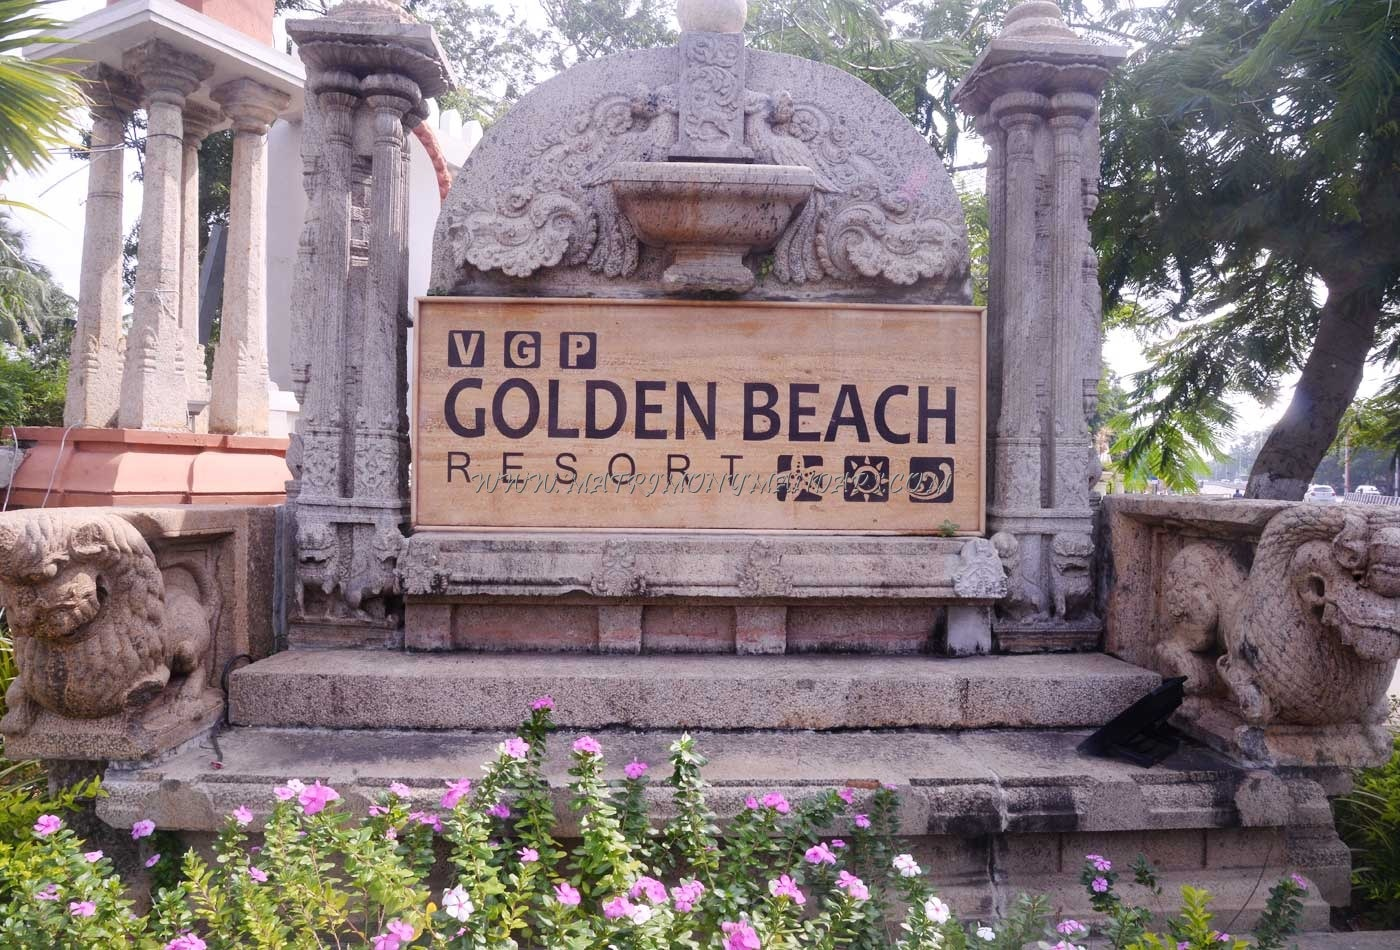 Find the availability of the VGP Golden Beh Resort - Peock Lawn in ECR, Chennai and avail special offers